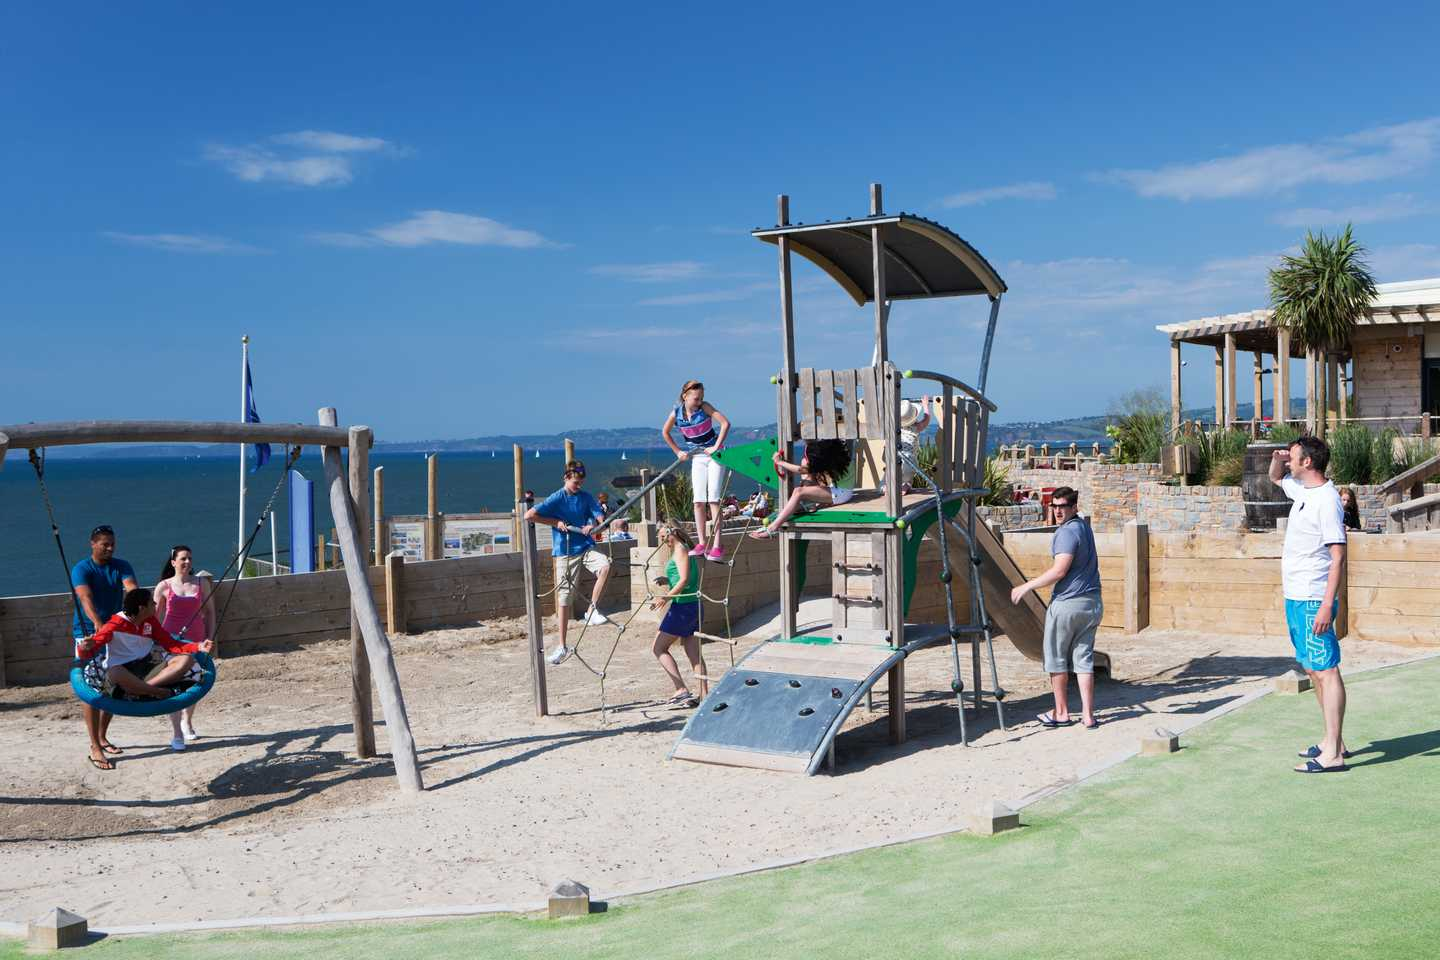 Children playing in the outdoor play area with stunning sea views